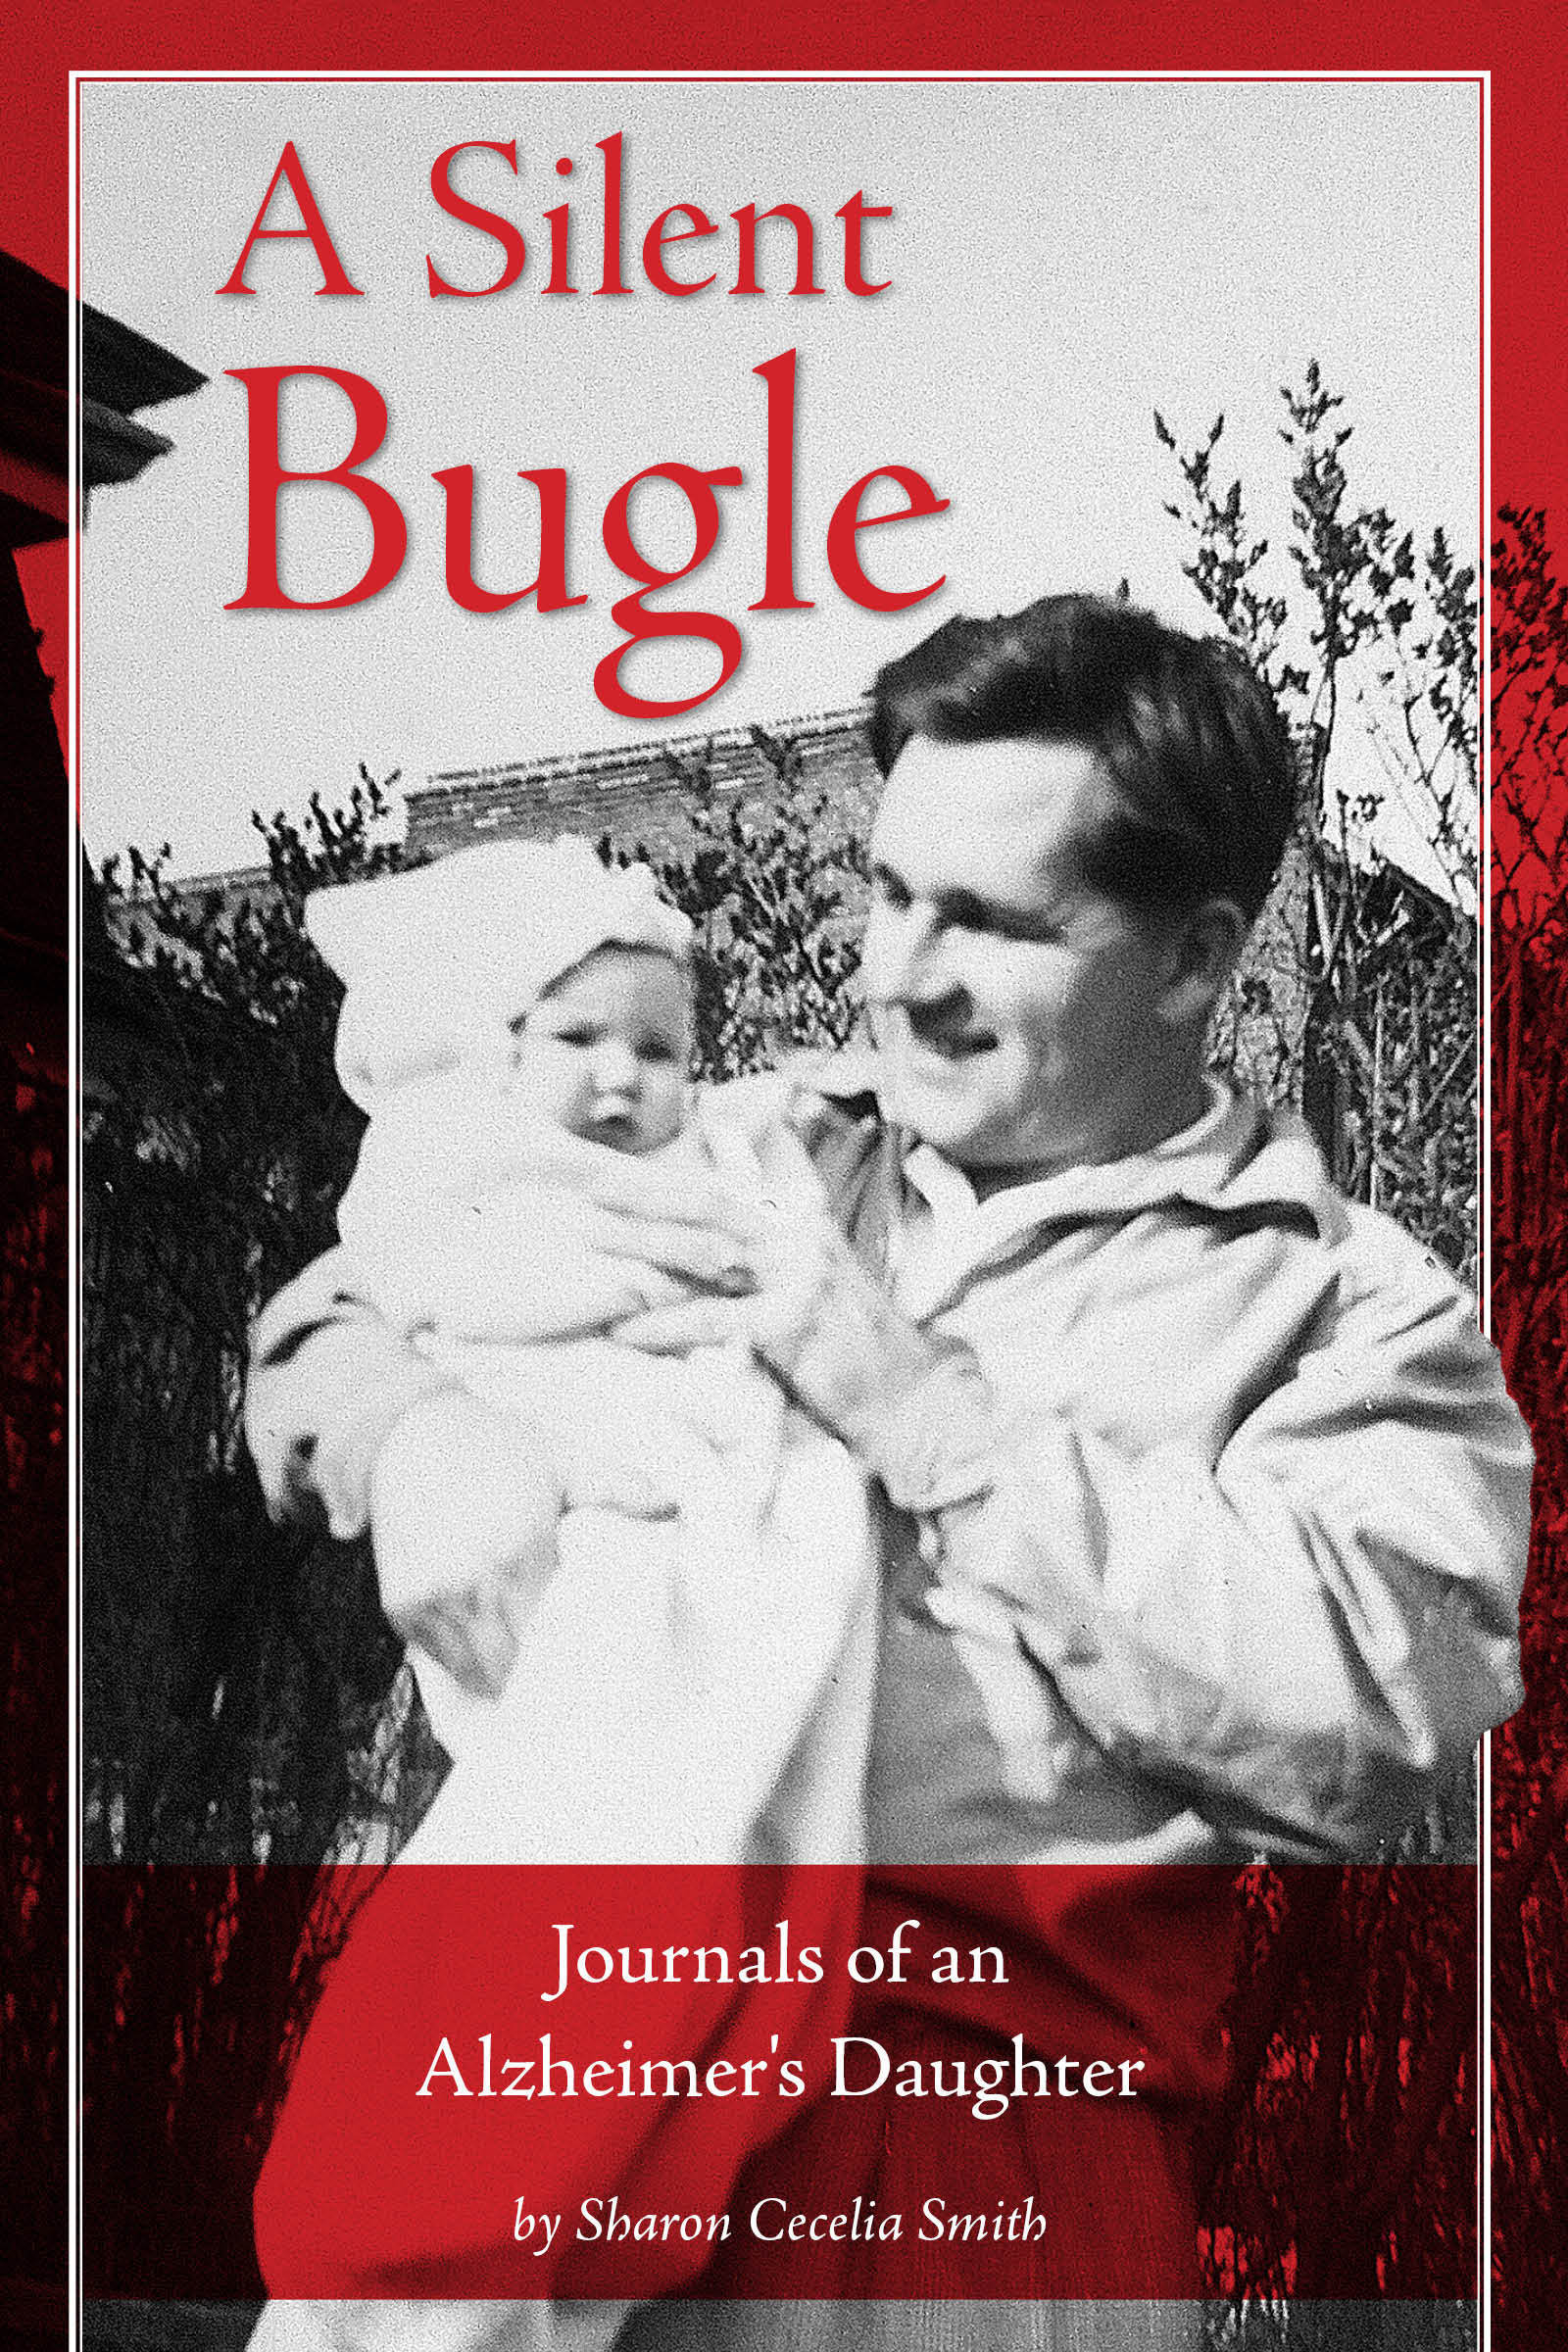 A Silent Bugle, Journals of an Alzheimers daughter  by  Sharon Cecelia Smith